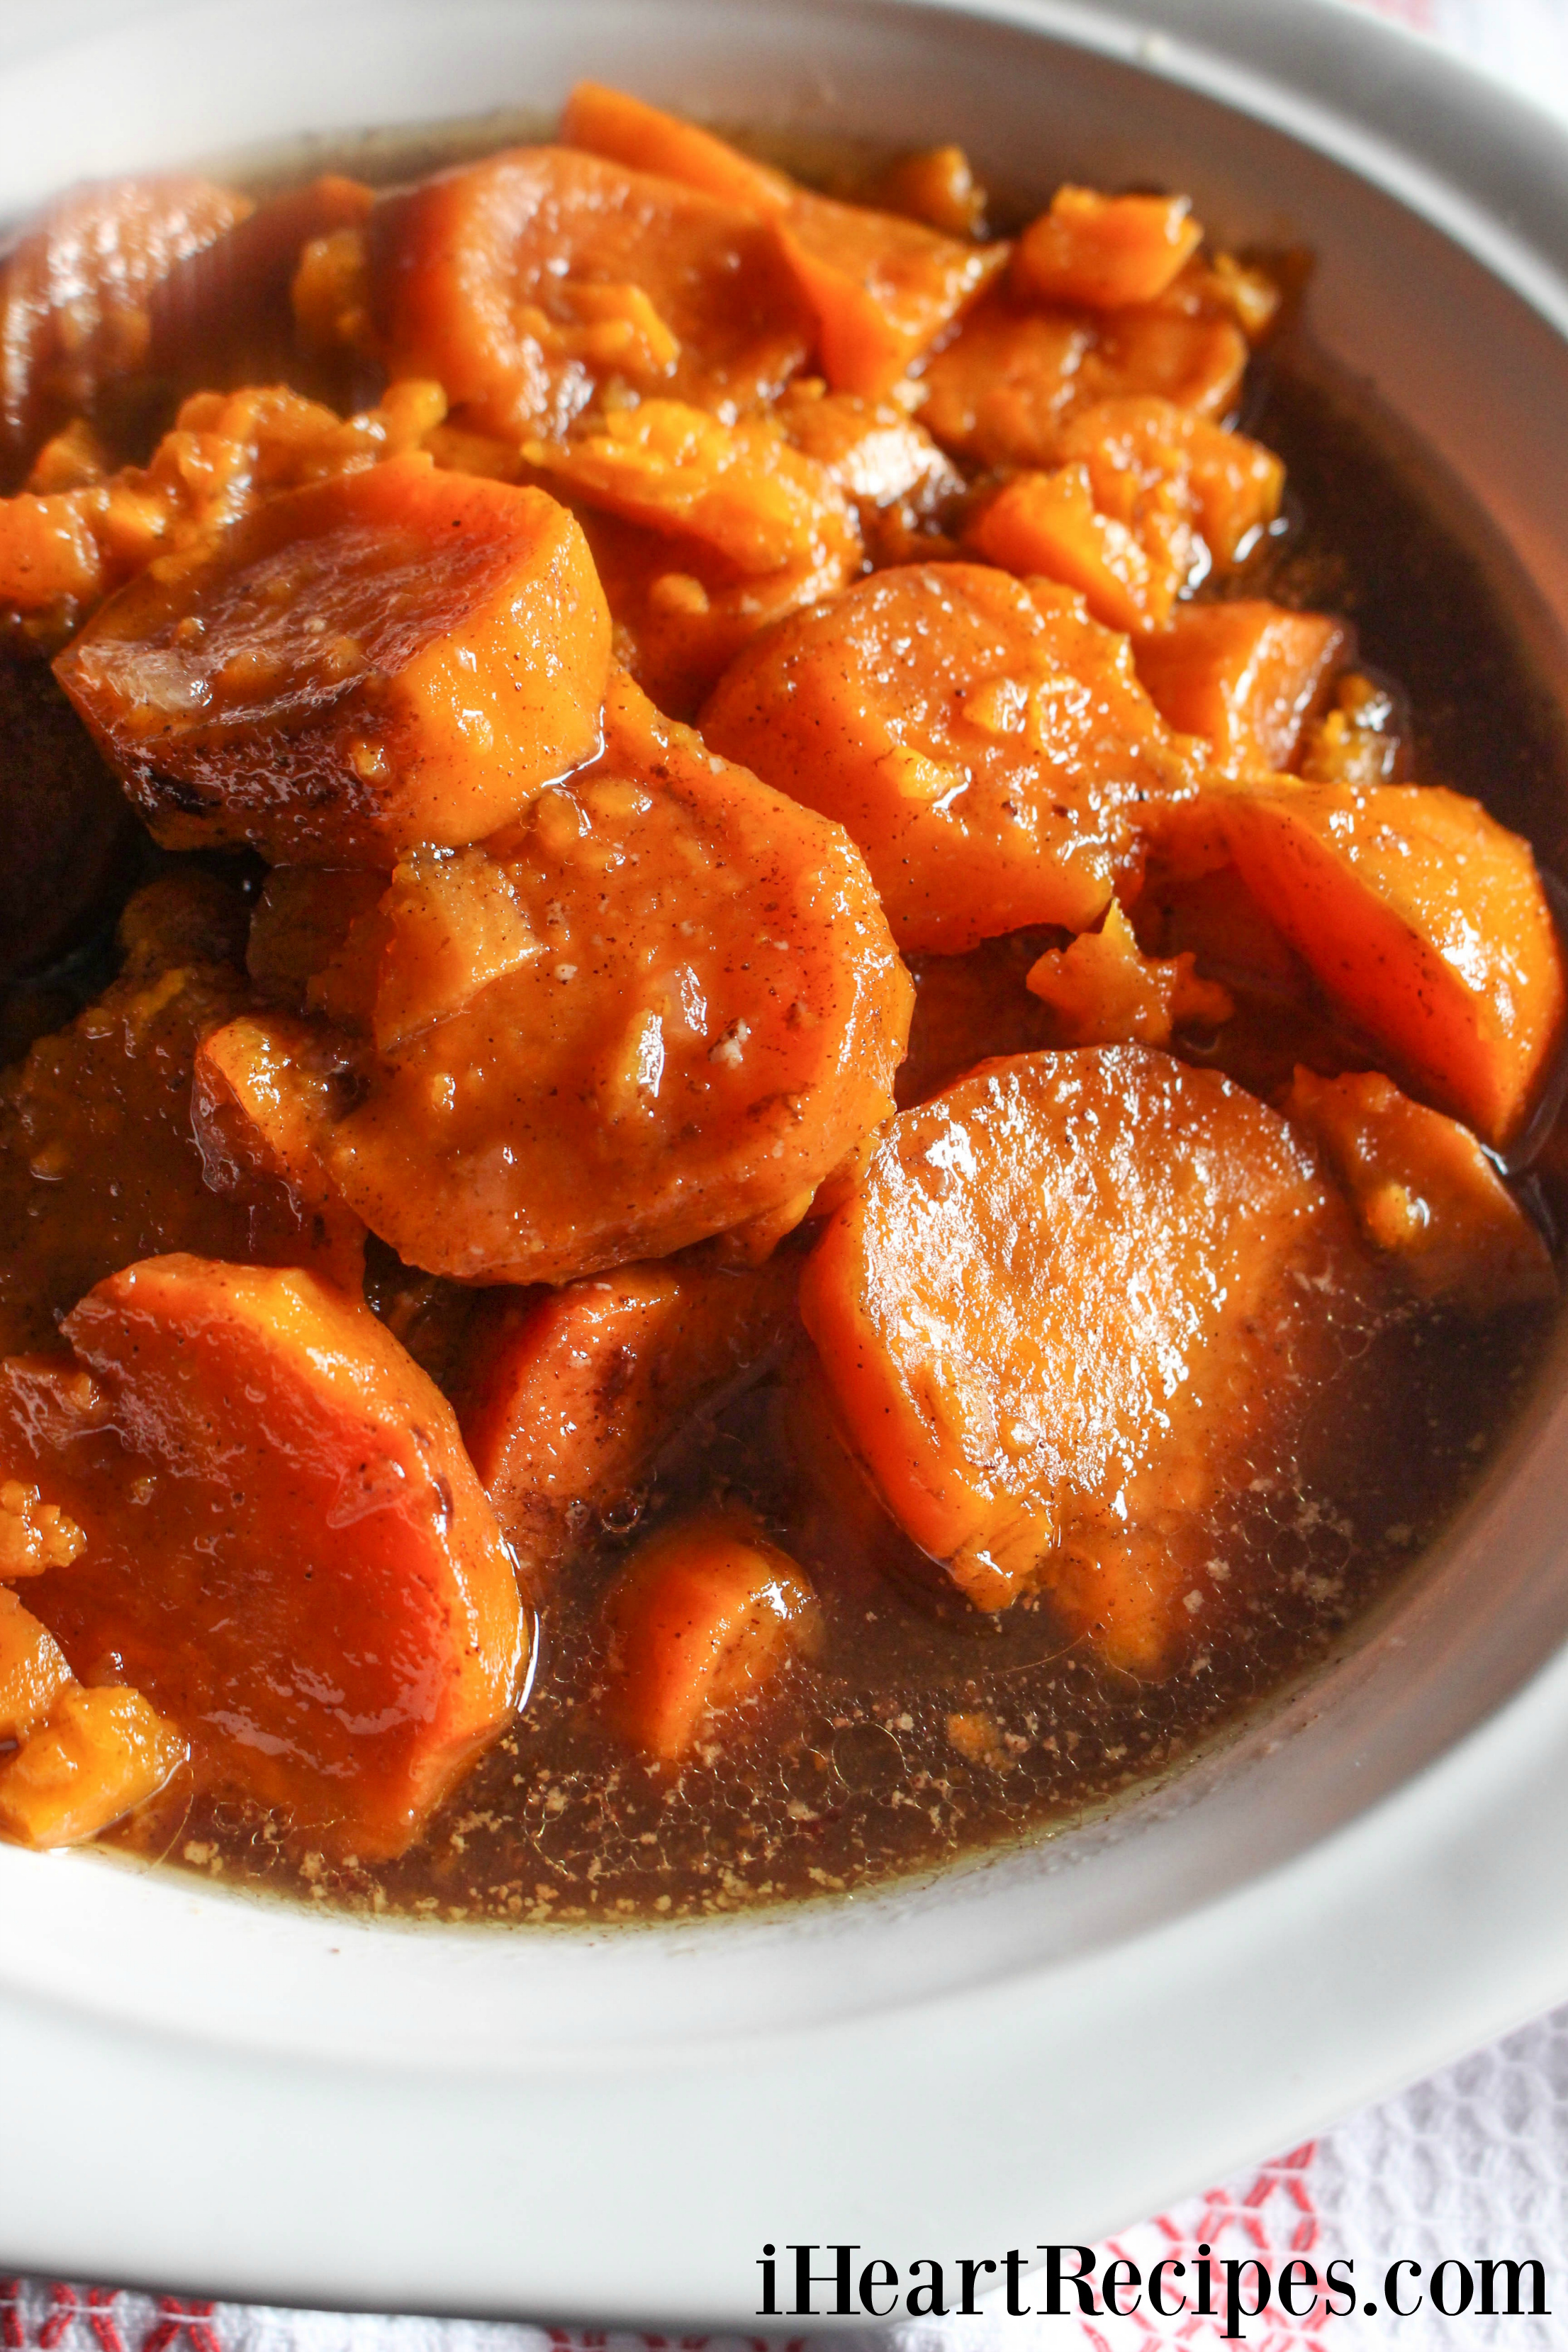 Slow Cooker Candied Yams I Heart Recipes